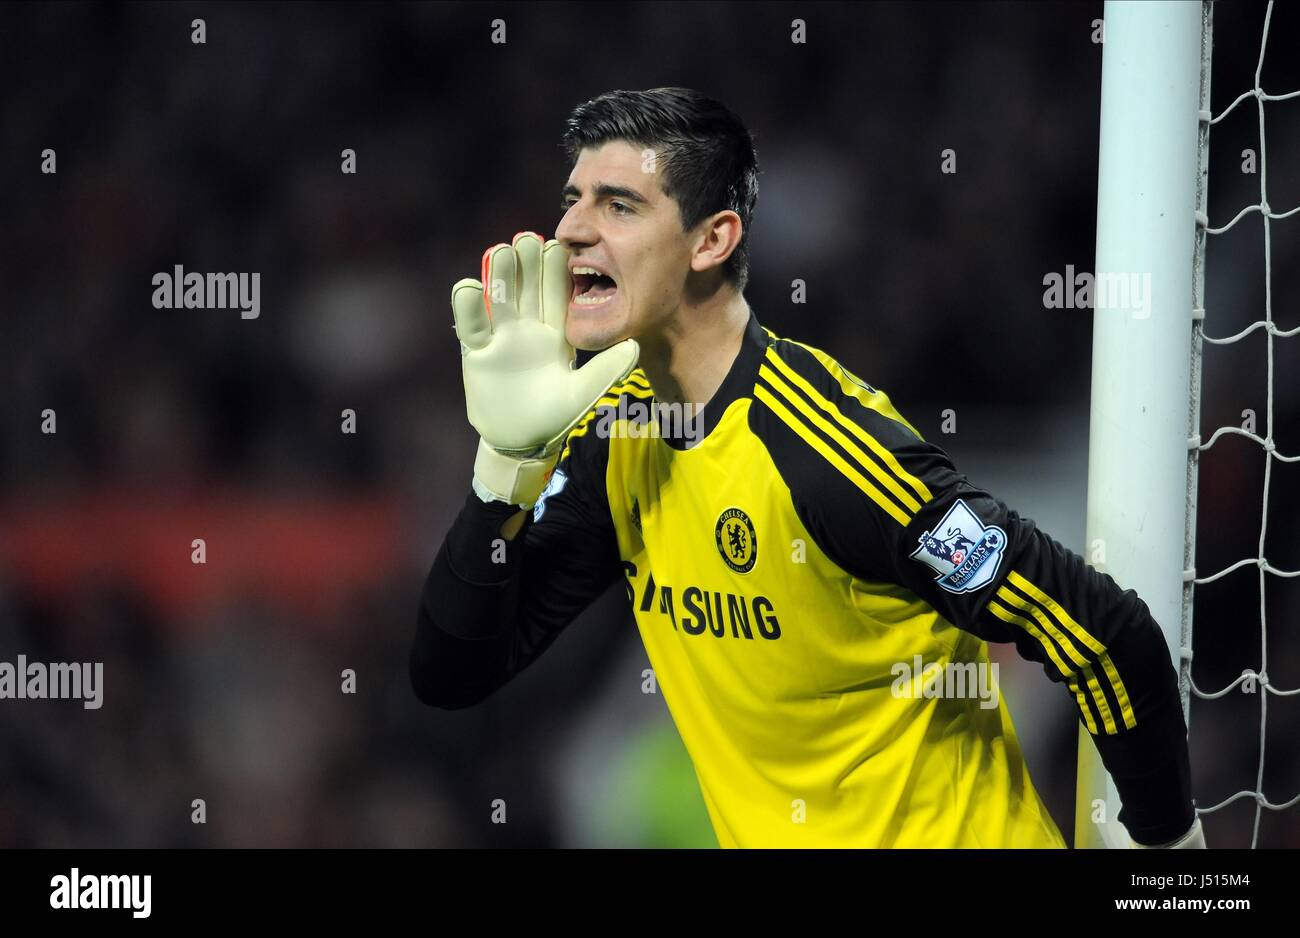 Thibaut Courtois Where Stock Photos Thibaut Courtois Where Stock